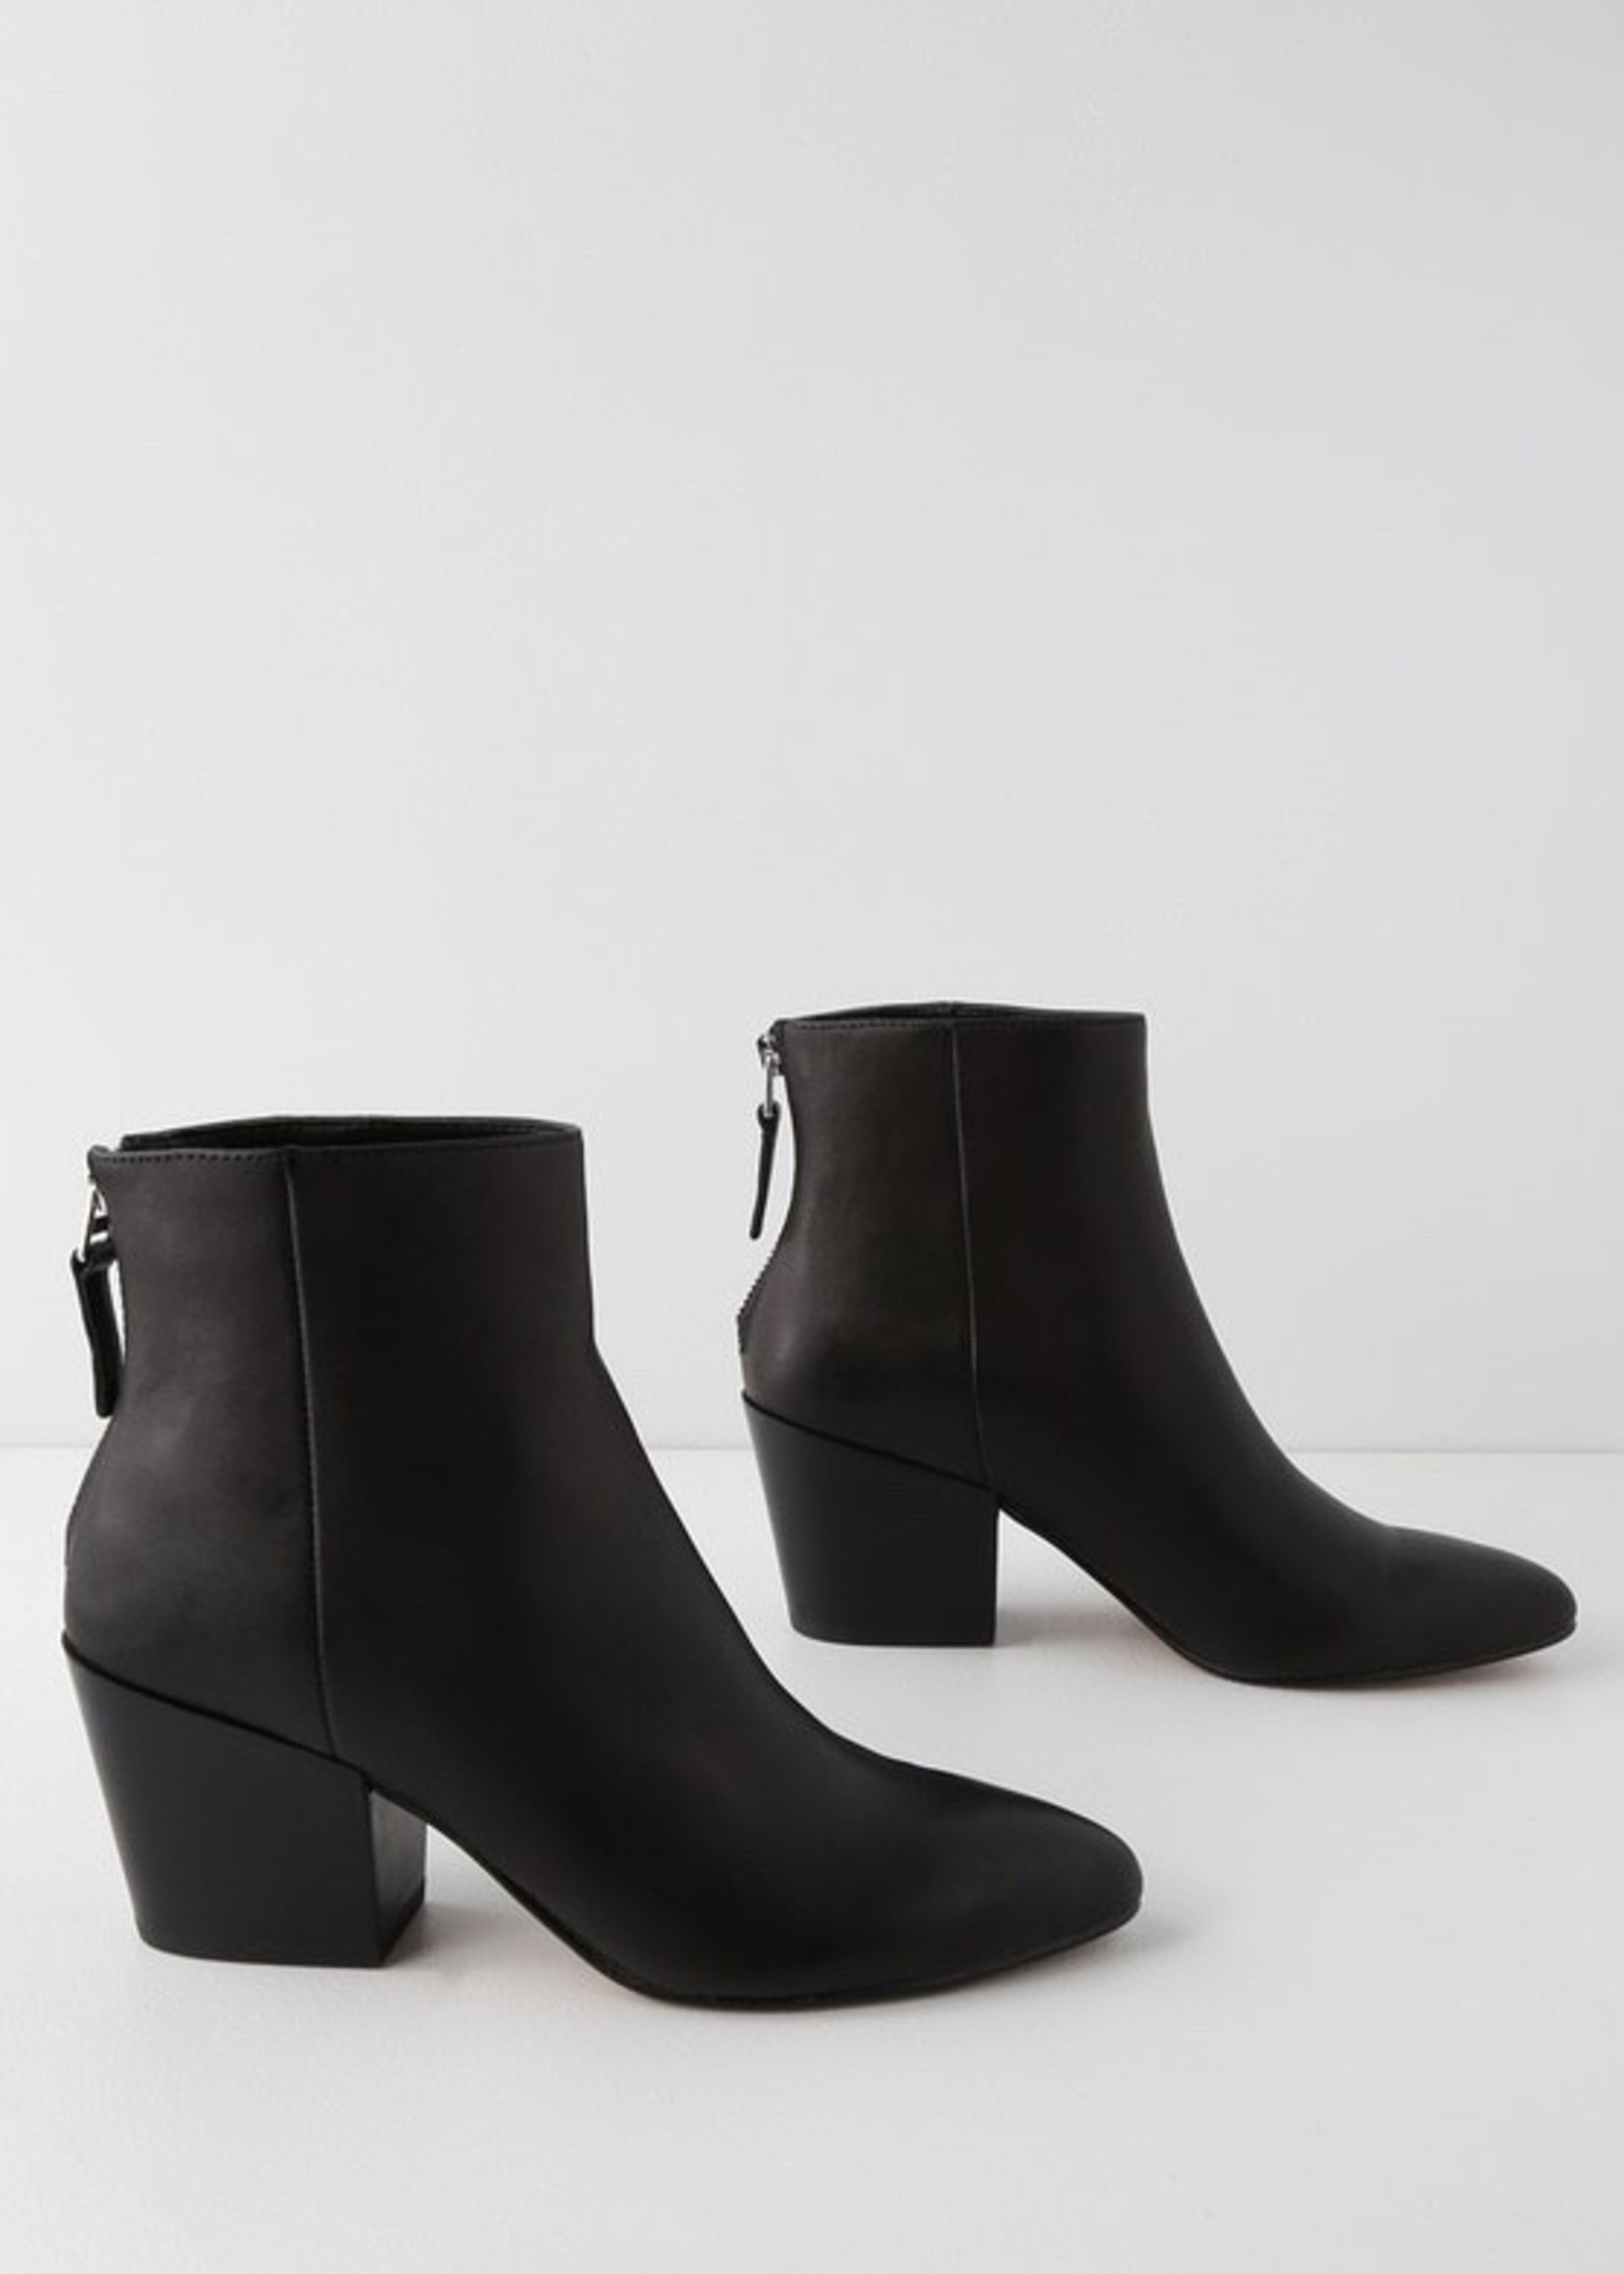 DOLCE VITA Coltyn Ankle Bootie